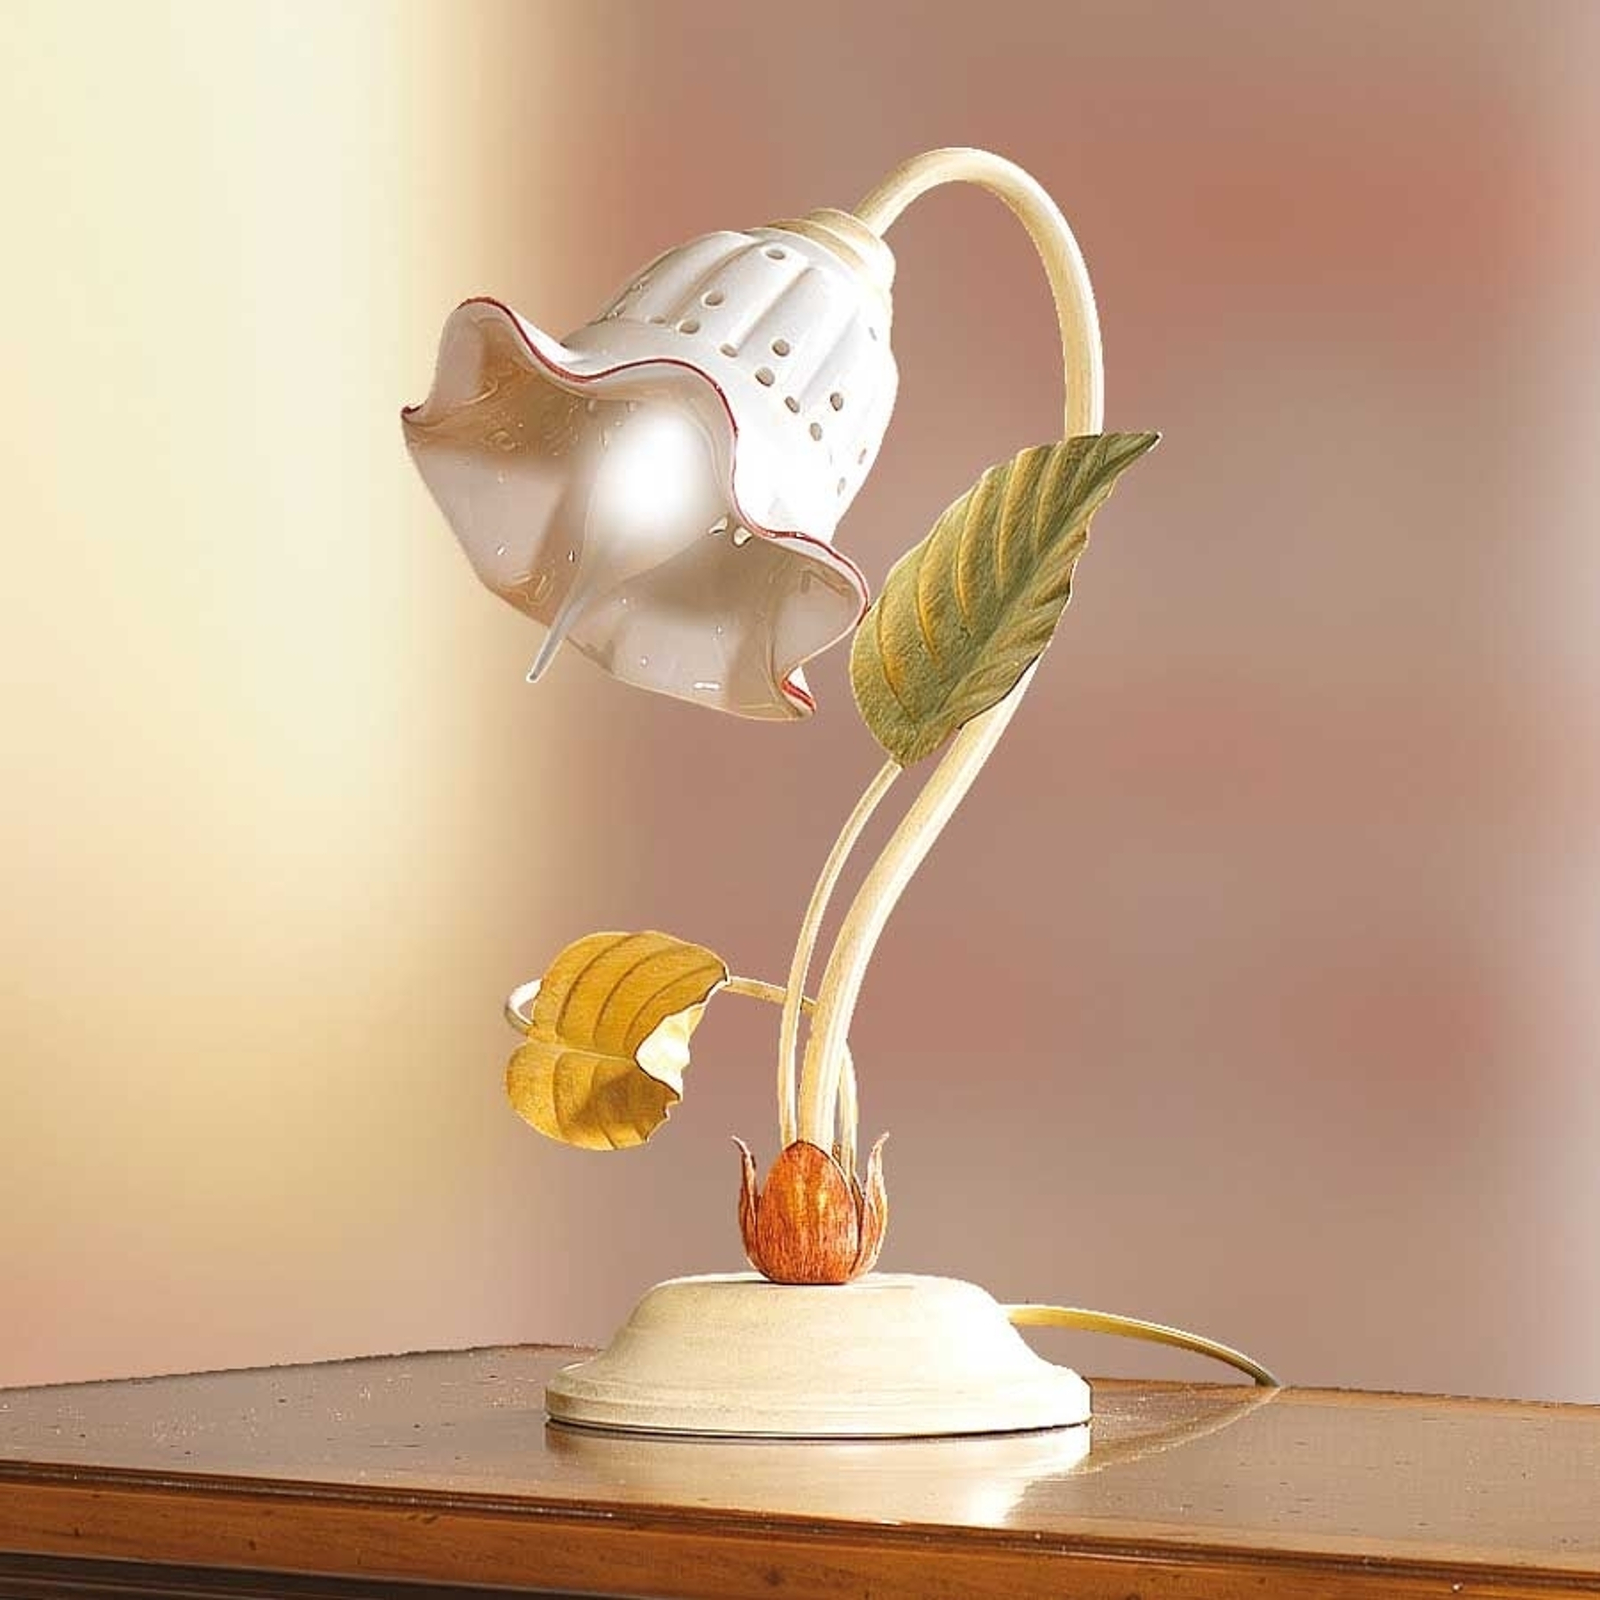 GIADE table lamp with a Florentine style_2013075_1